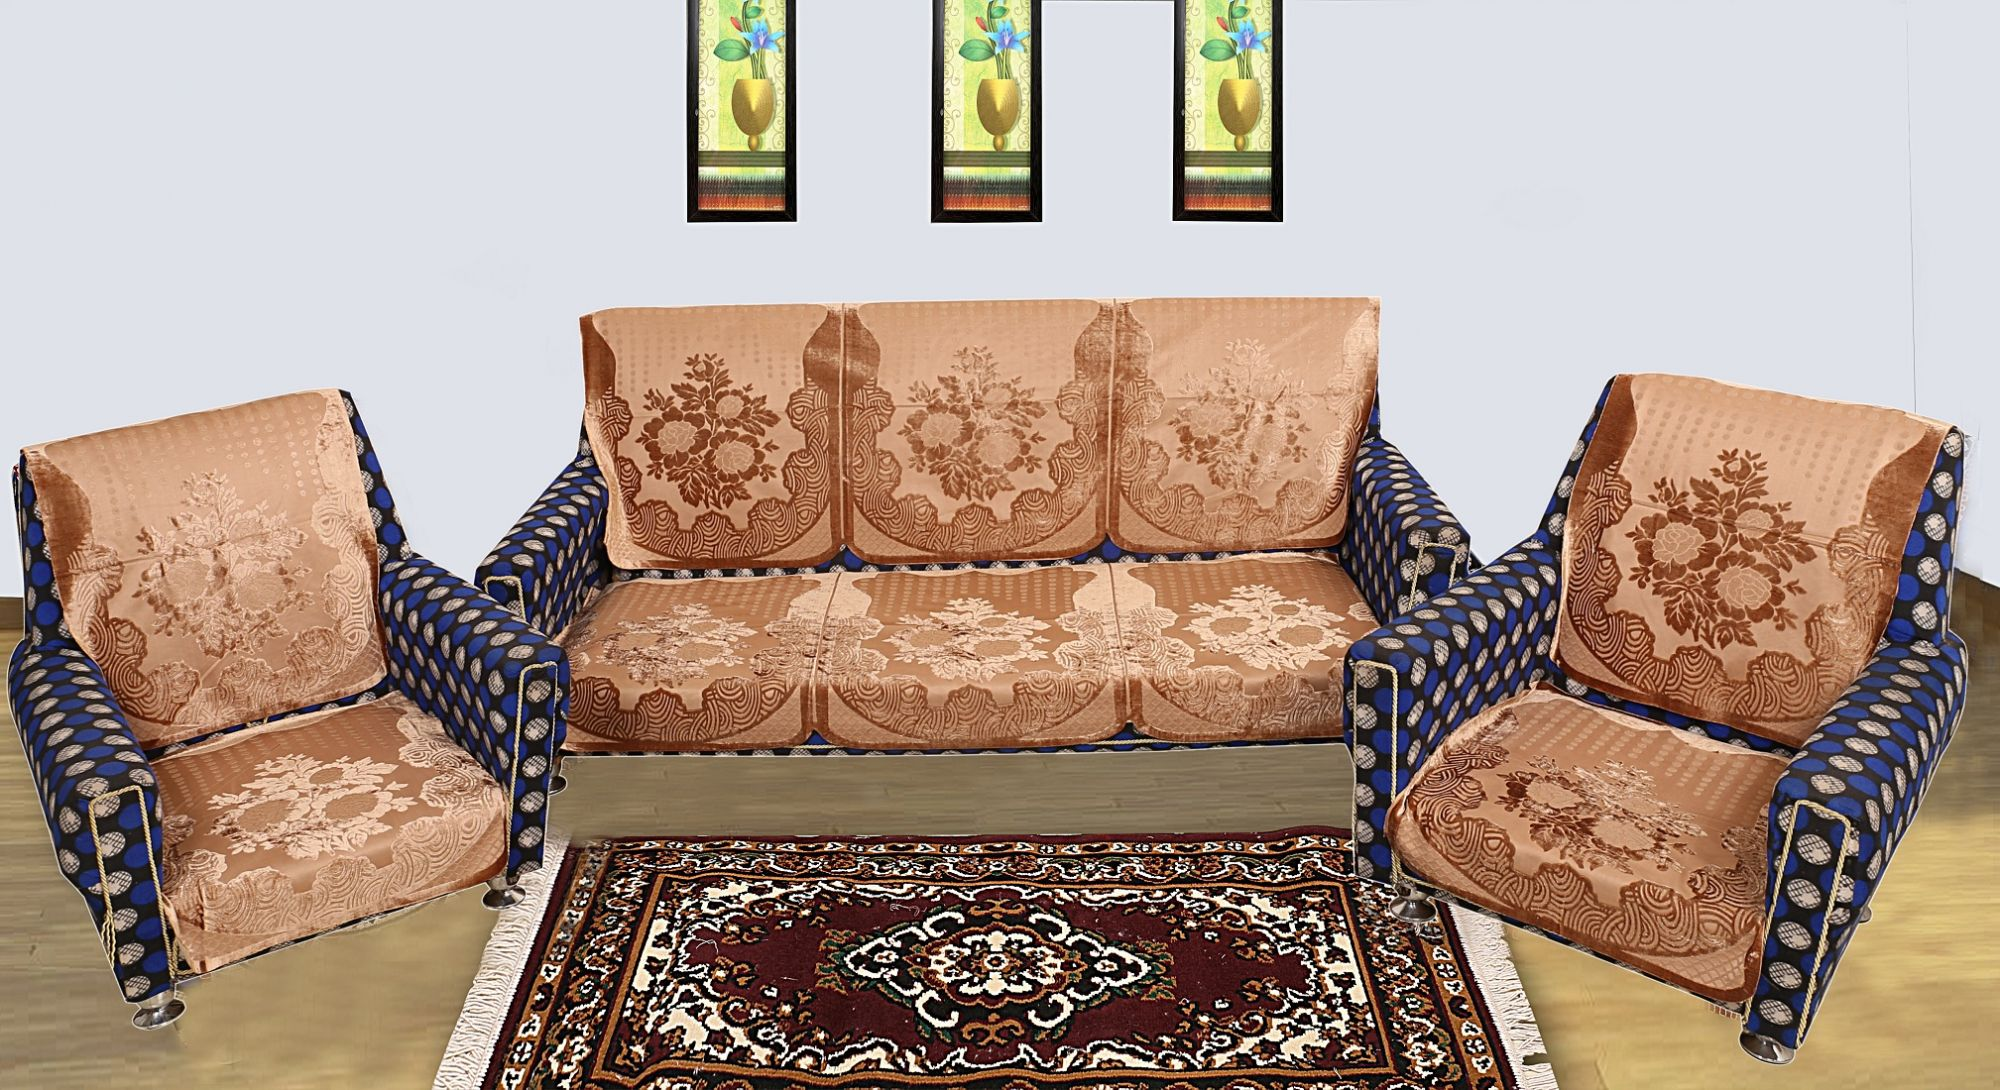 Kuber Industries Floral Design 6 Pieces Velvet 5 Seater Sofa Cover (Gold)-CTKTC1293